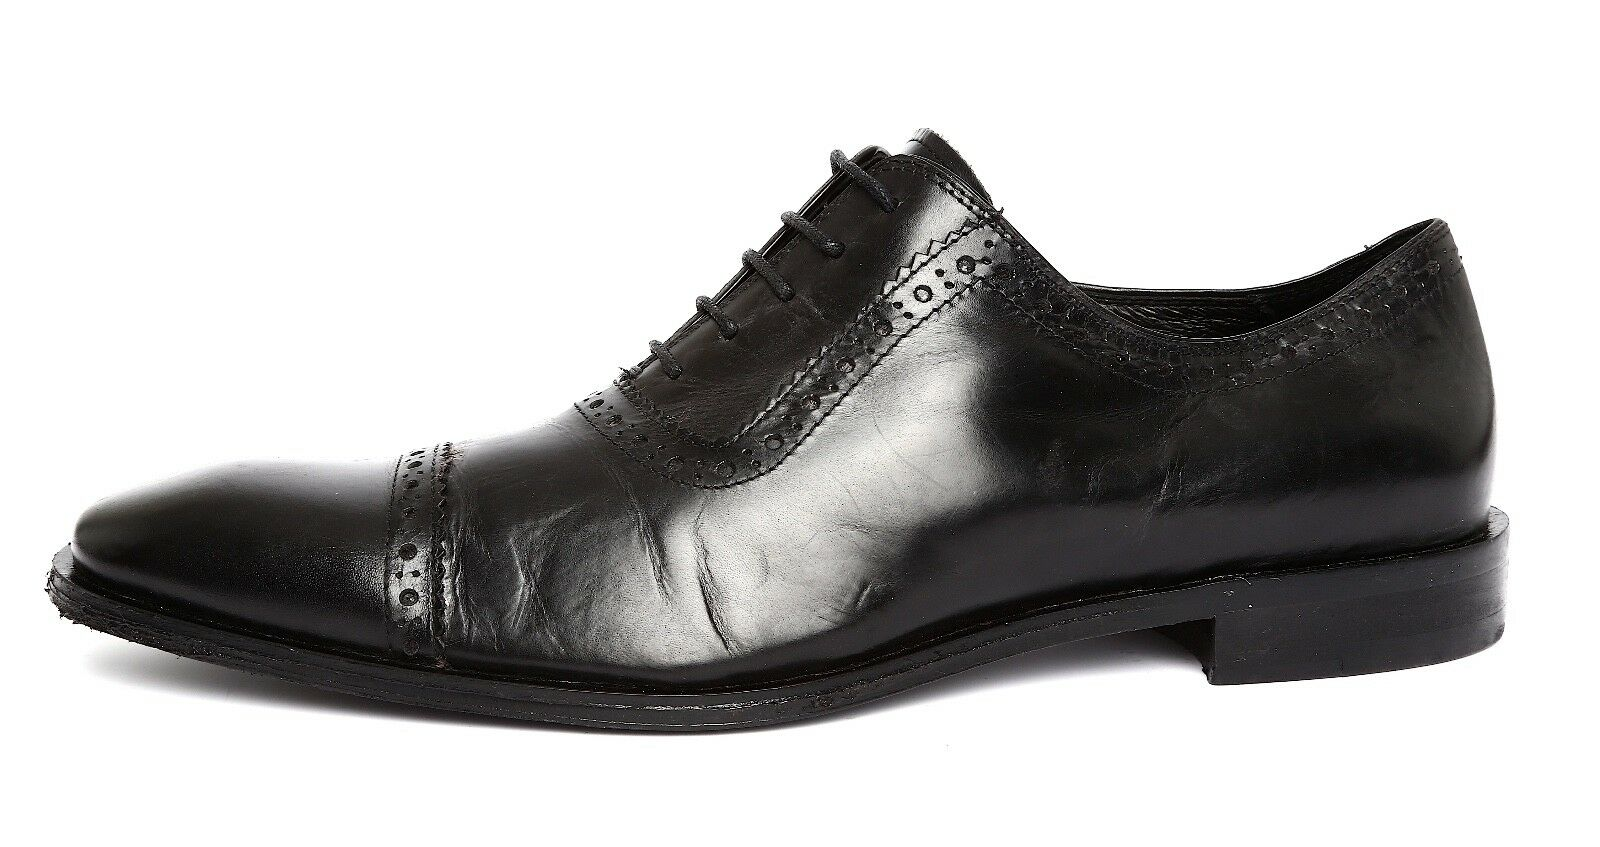 Calibrate Men's Black Leather Oxfords Sz 8M 5081